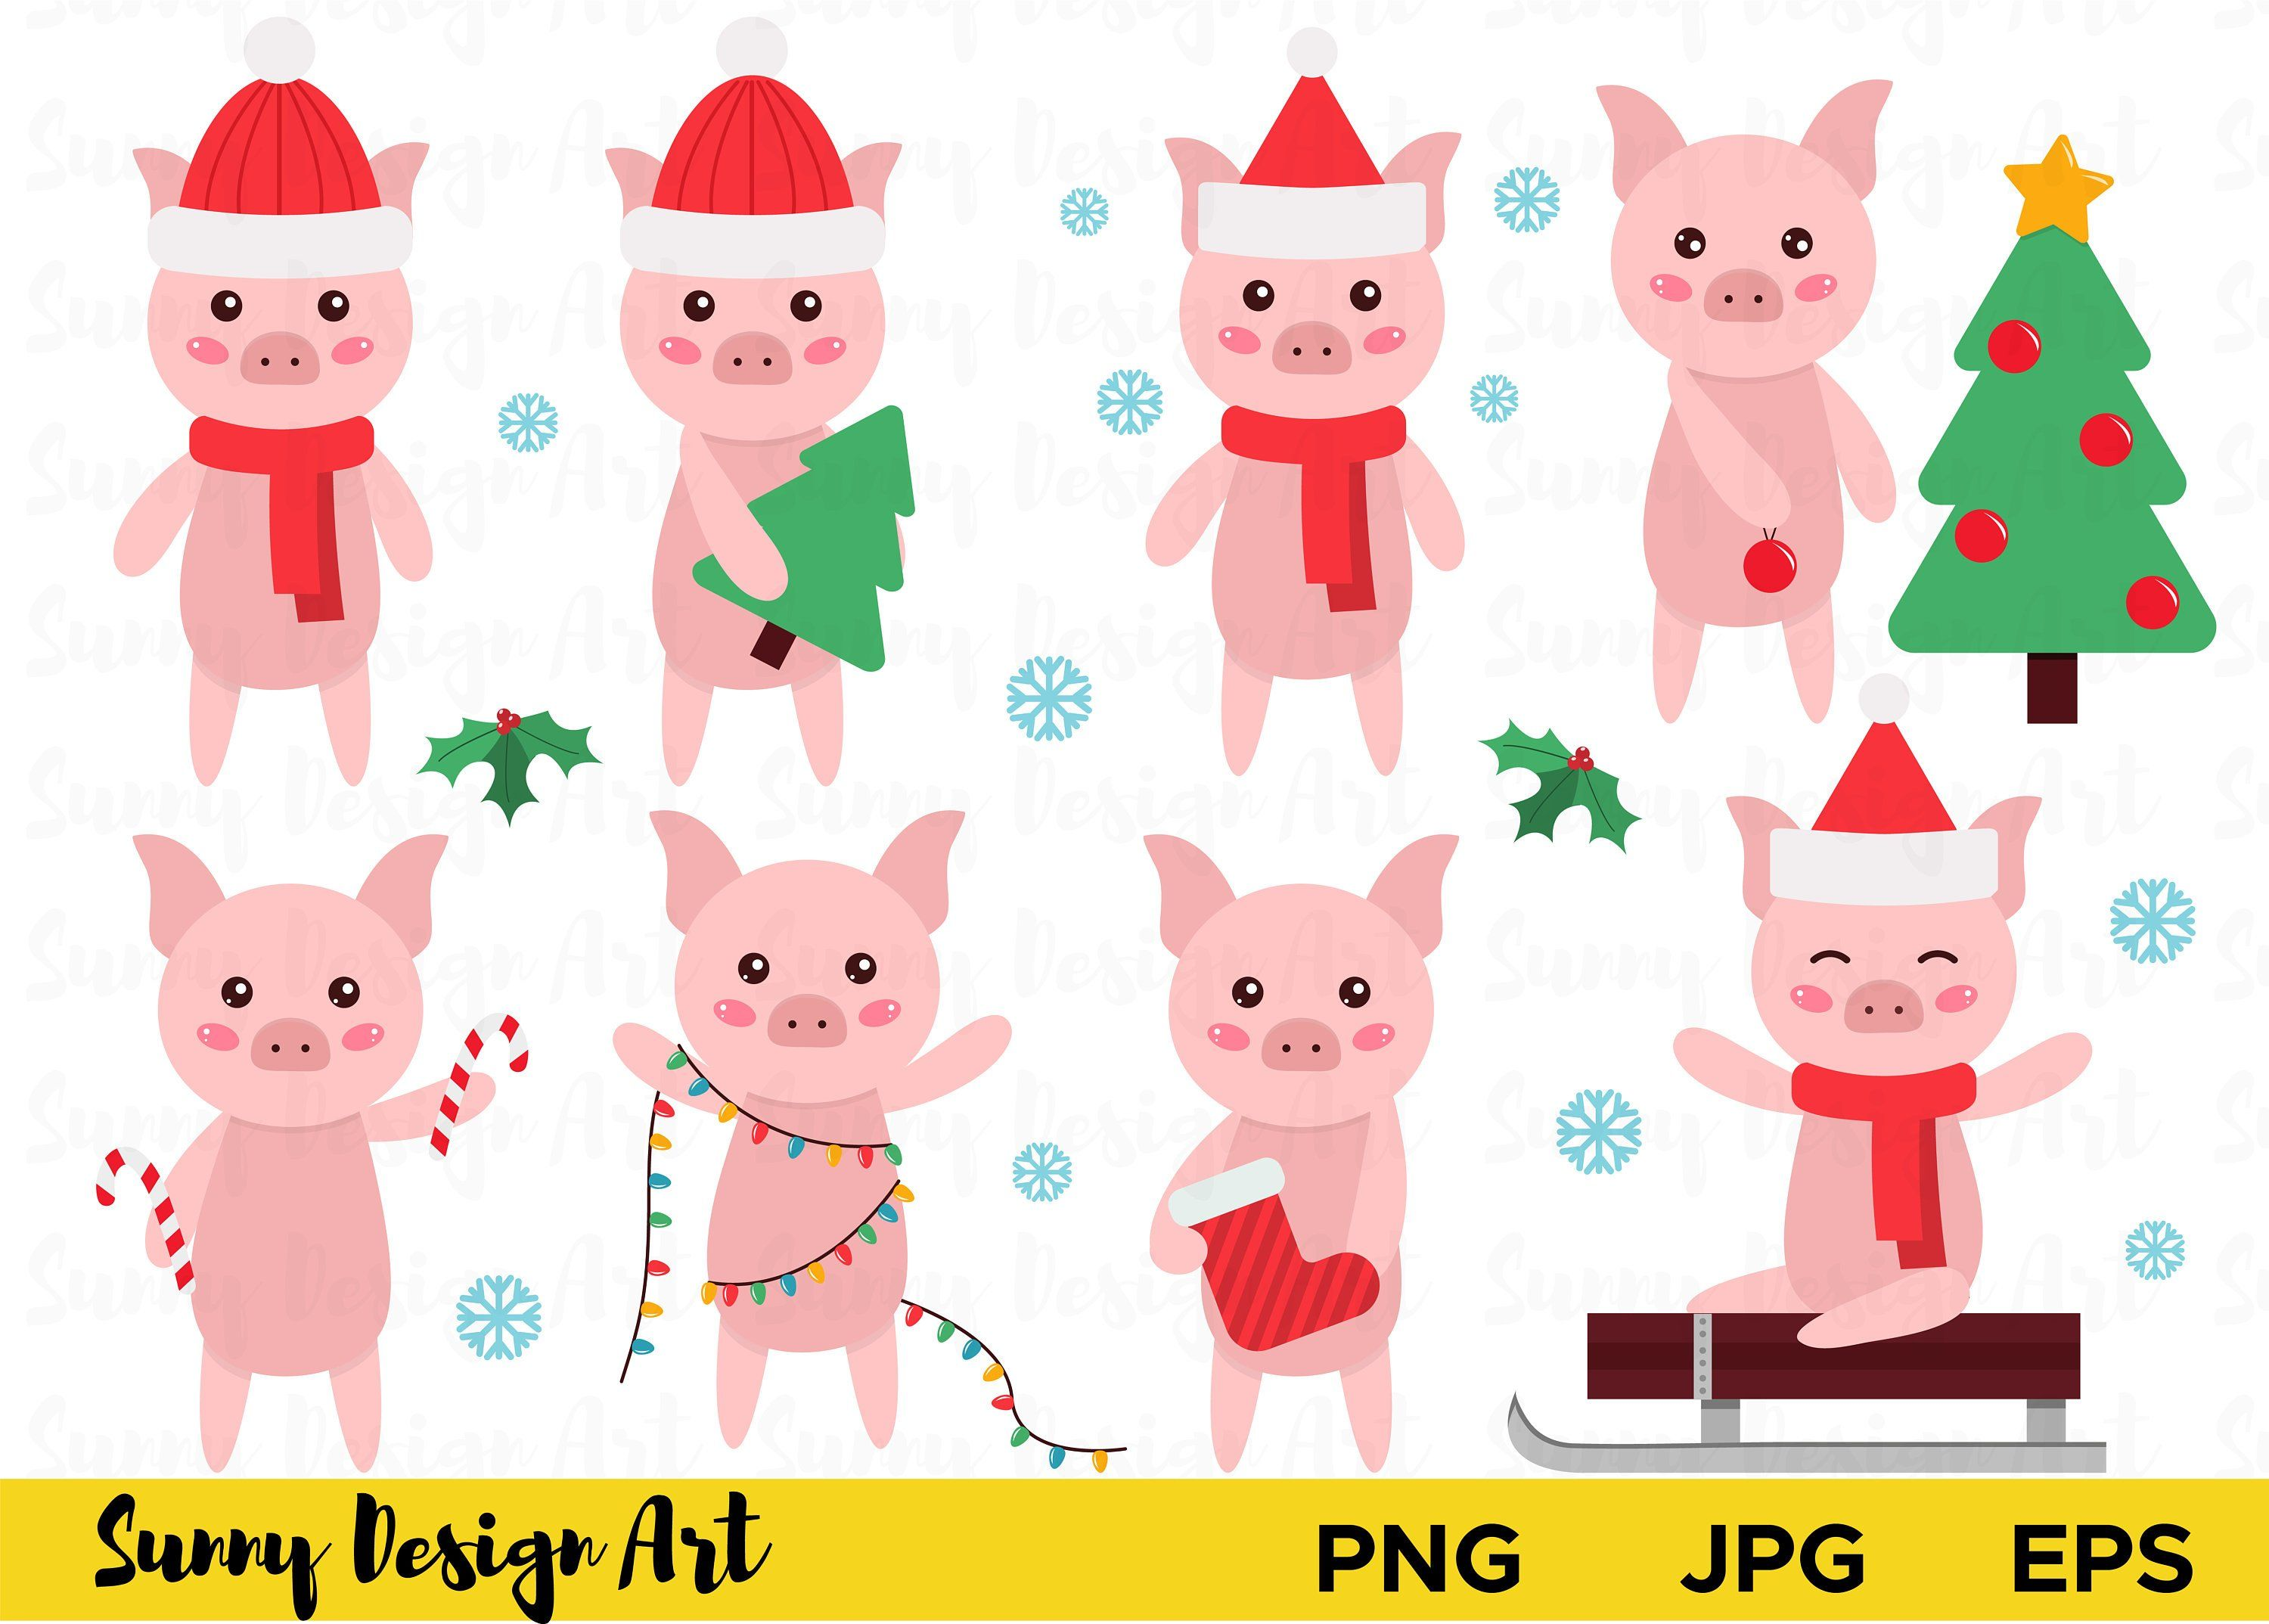 cute pigs clipart new year 2019 symbol pig christmas [ 3000 x 2147 Pixel ]